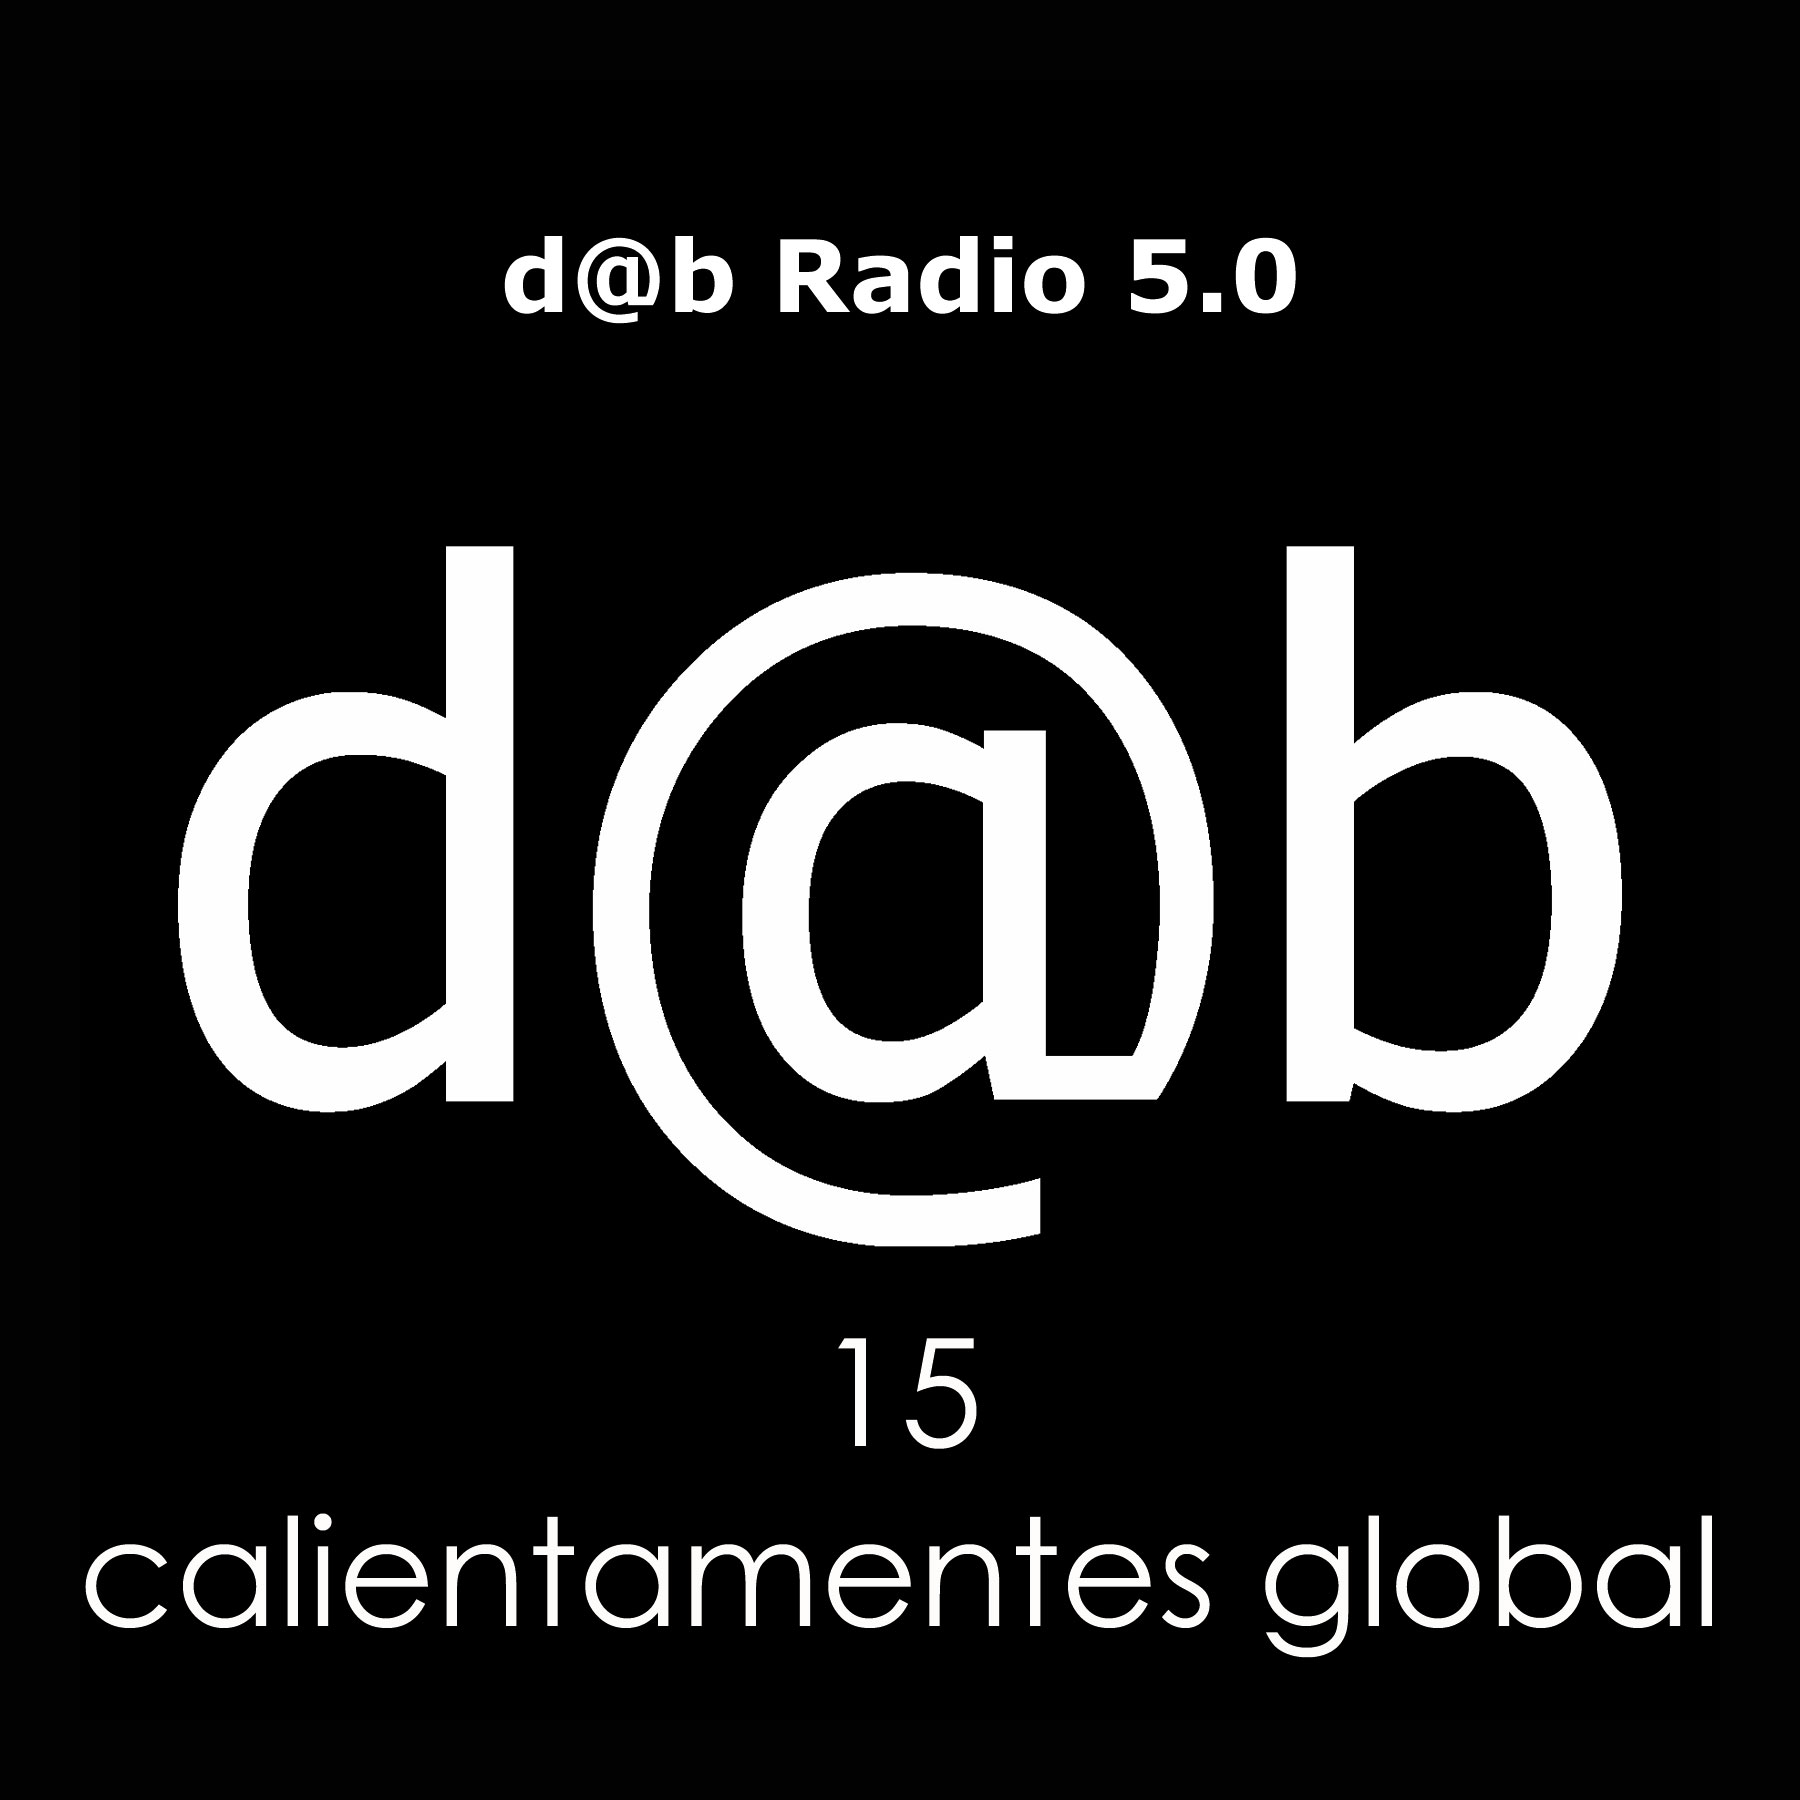 Desmontando a Babylon: DaB Radio 5.0 Episodio 15 con helios colera – Calienta-mentes global (formidable amenaza fantasma)